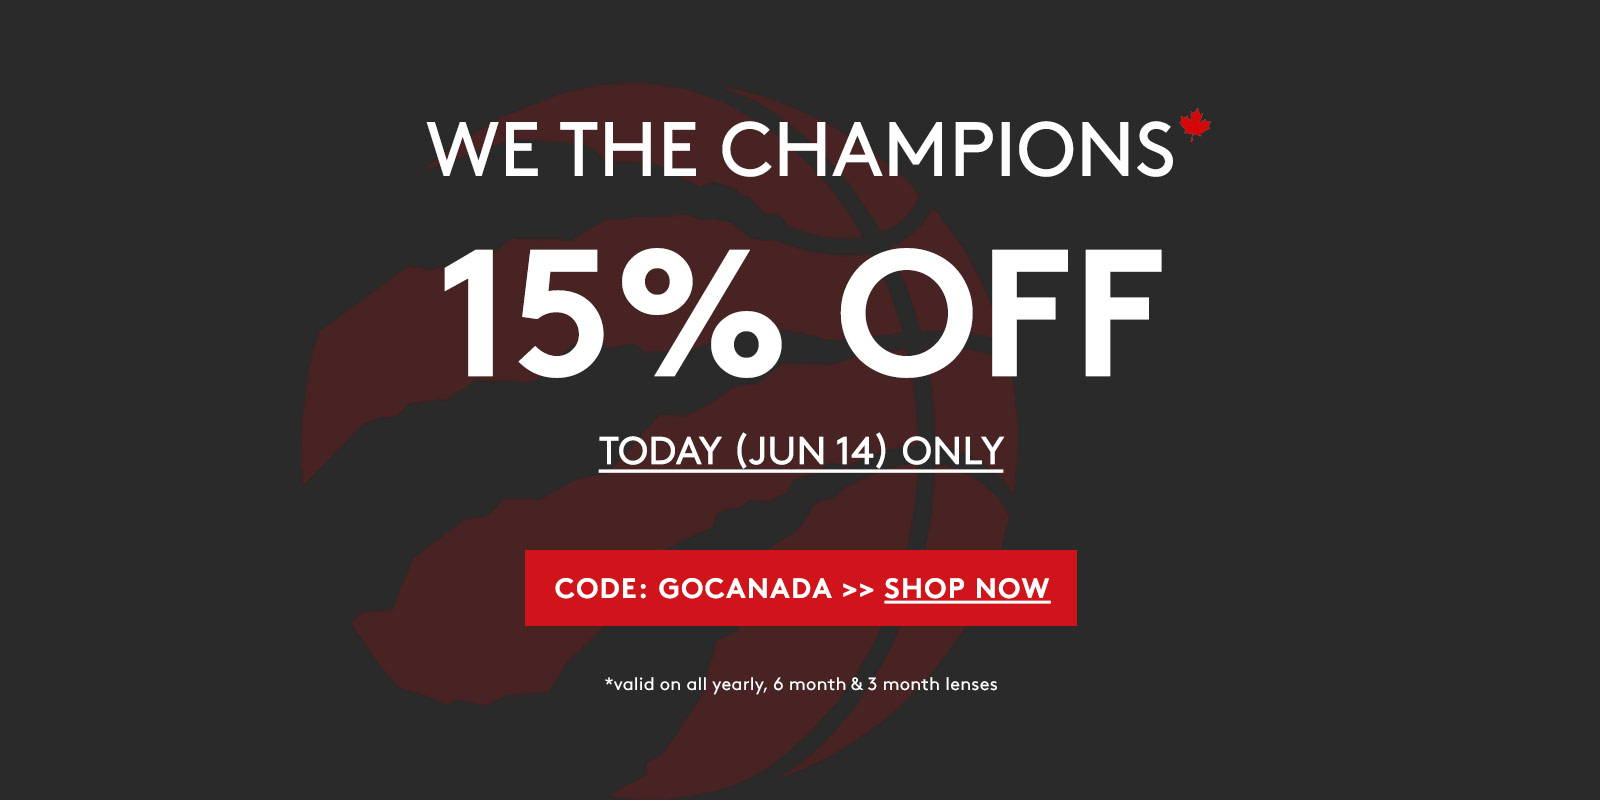 We the champions. 15% OFF today only. Code: GOCANADA